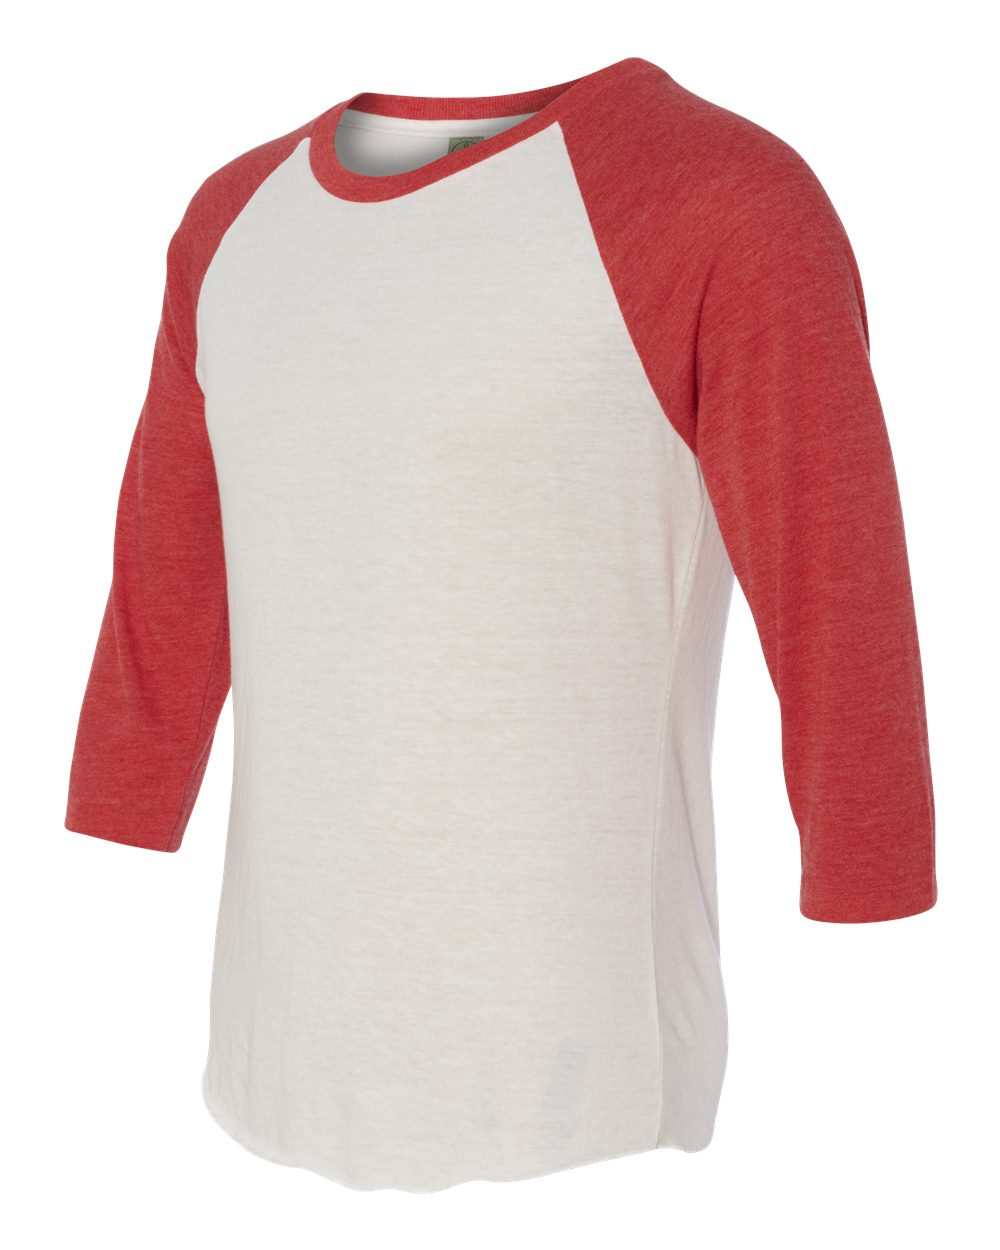 alternative 20890 eco jersey baseball raglan t shirt